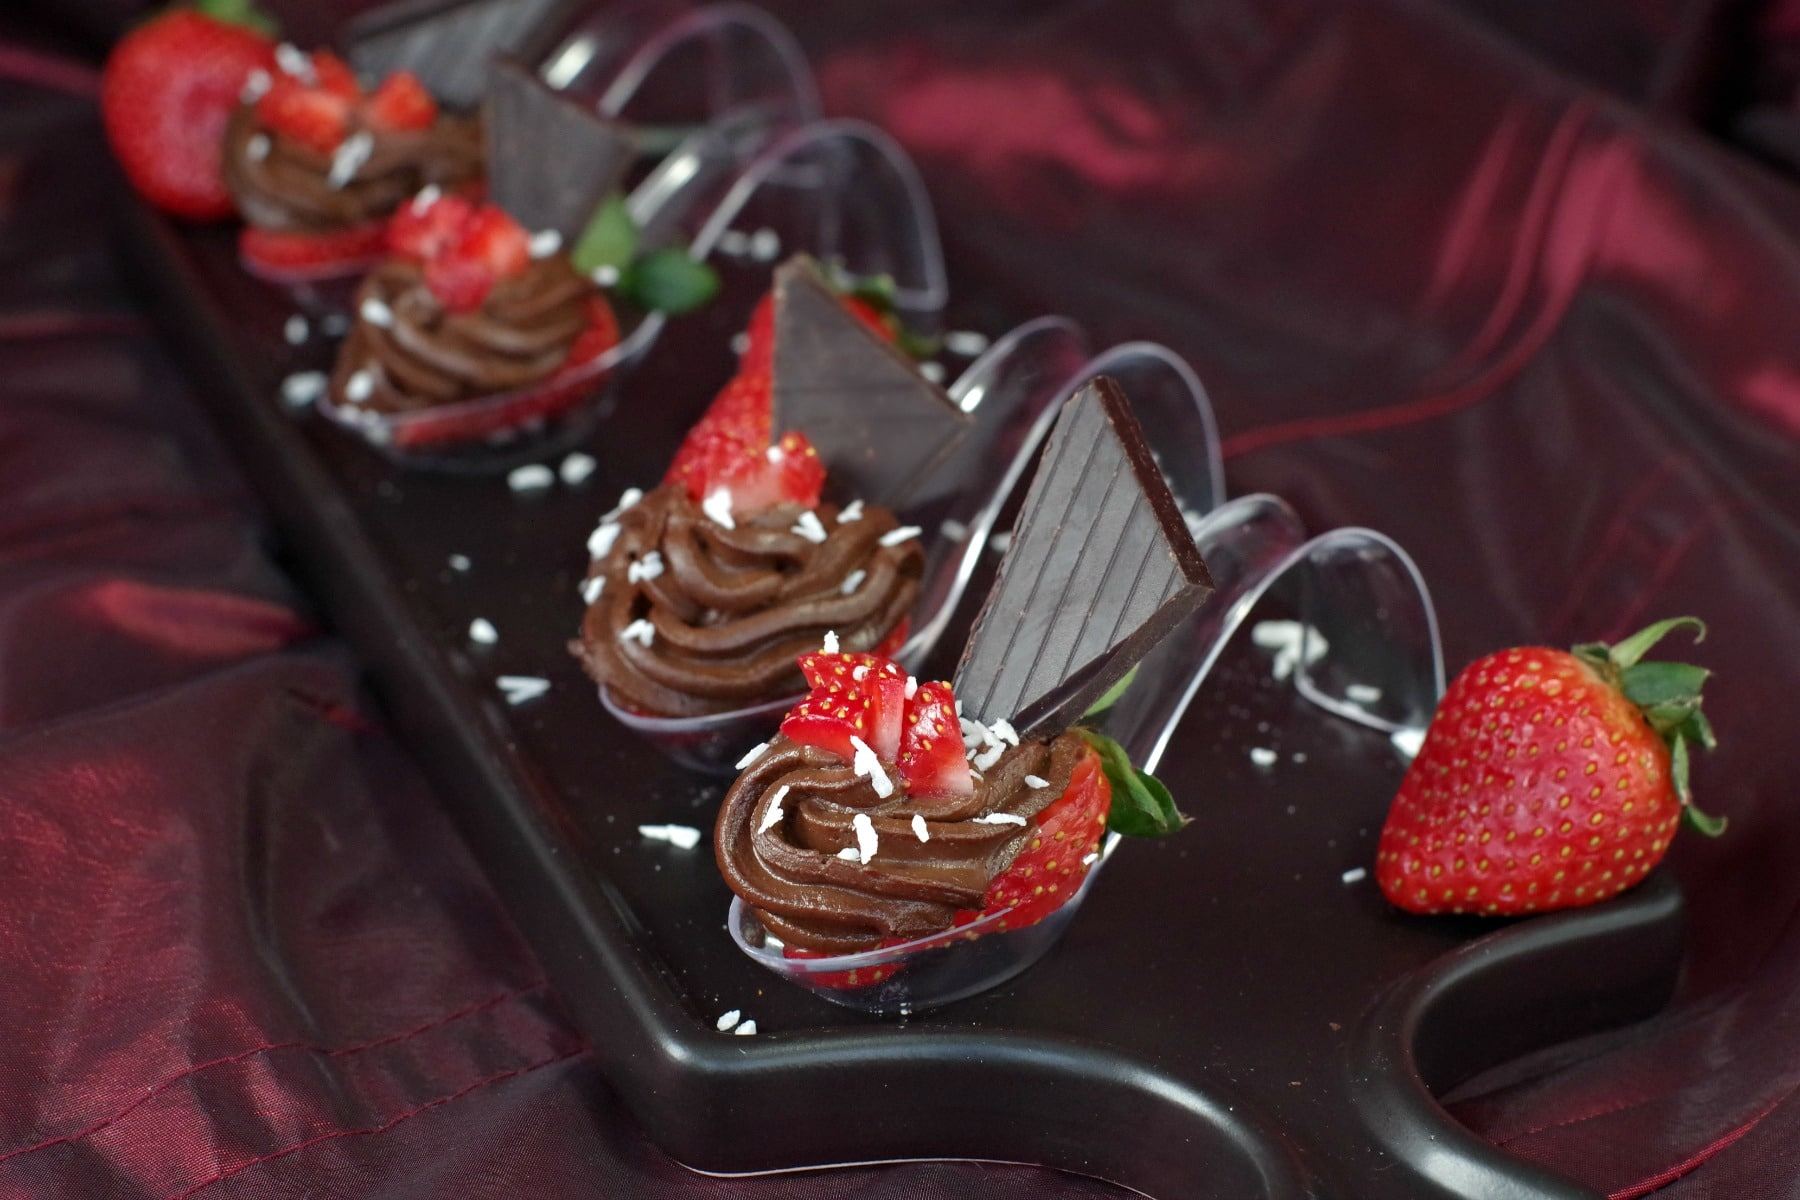 4 Chocolate Avocado strawberry desserts on spoons on a black appetizer tray